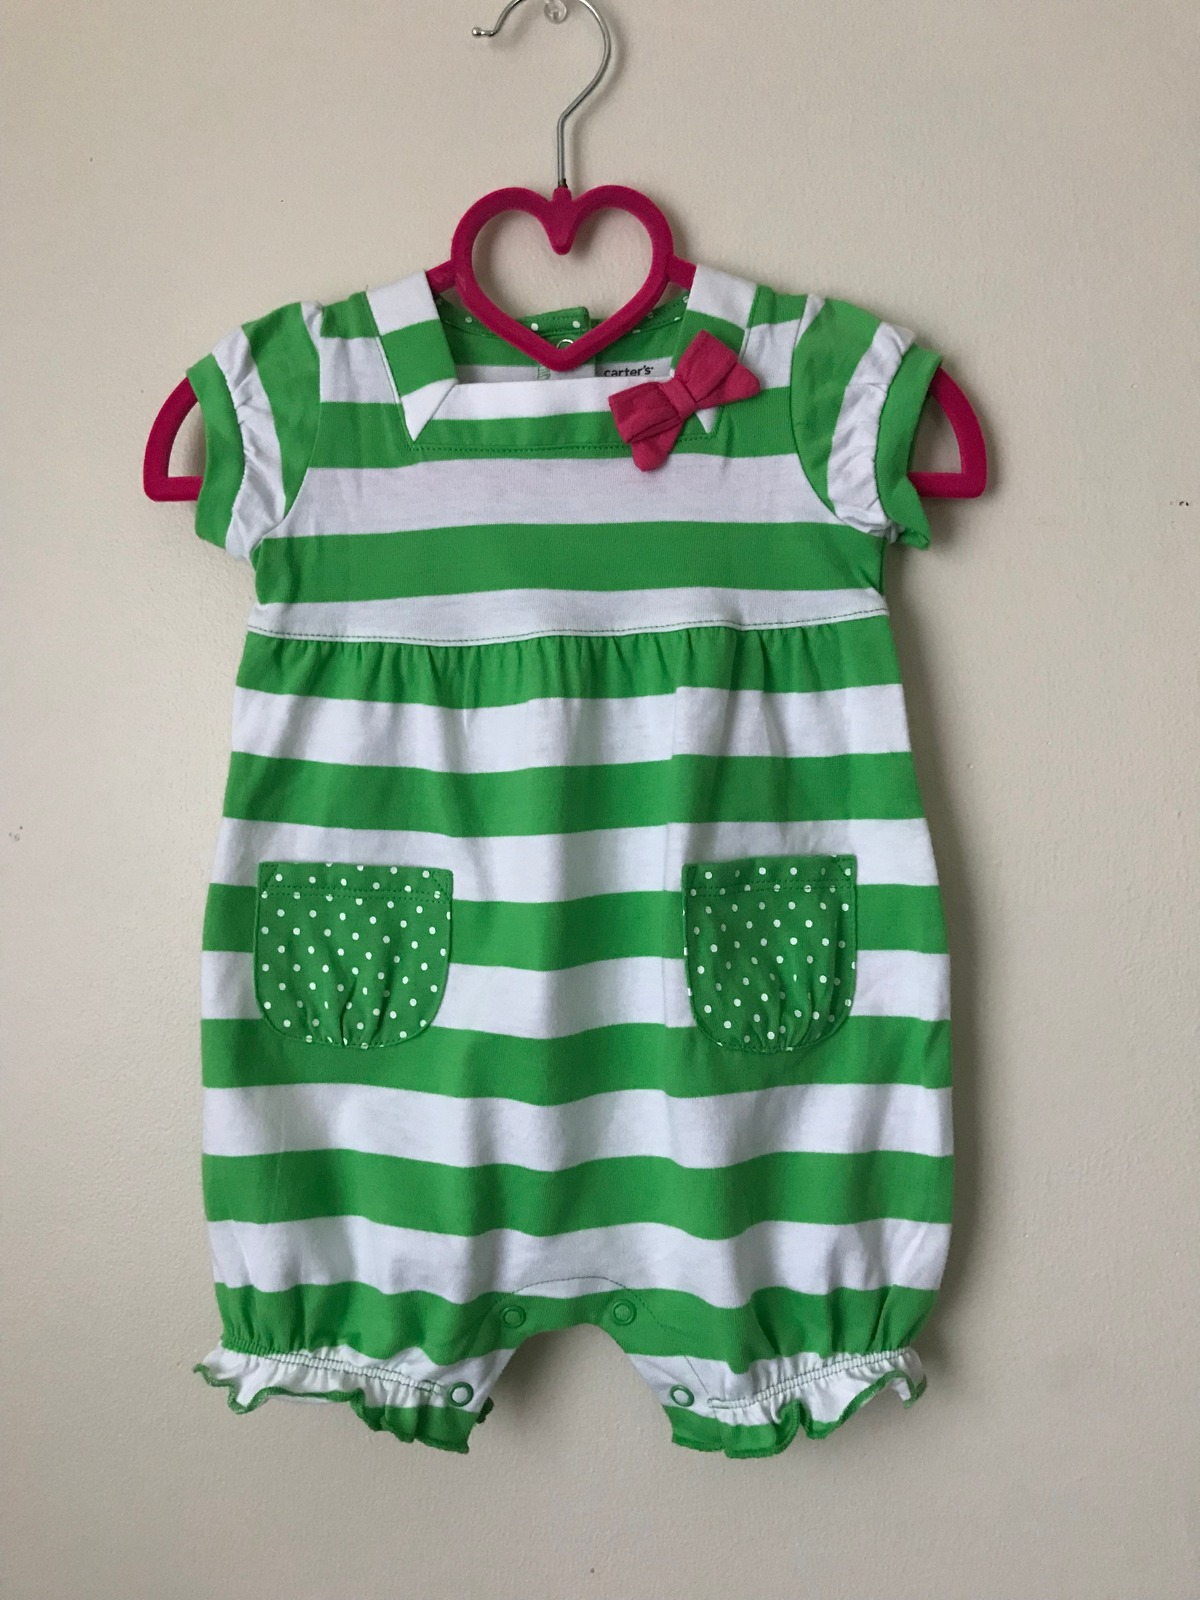 e5d70a7ea Img 8103. Img 8103. Previous. Carters Baby Girl Clothes 6 Months Summer  Romper Sunsuit Green White